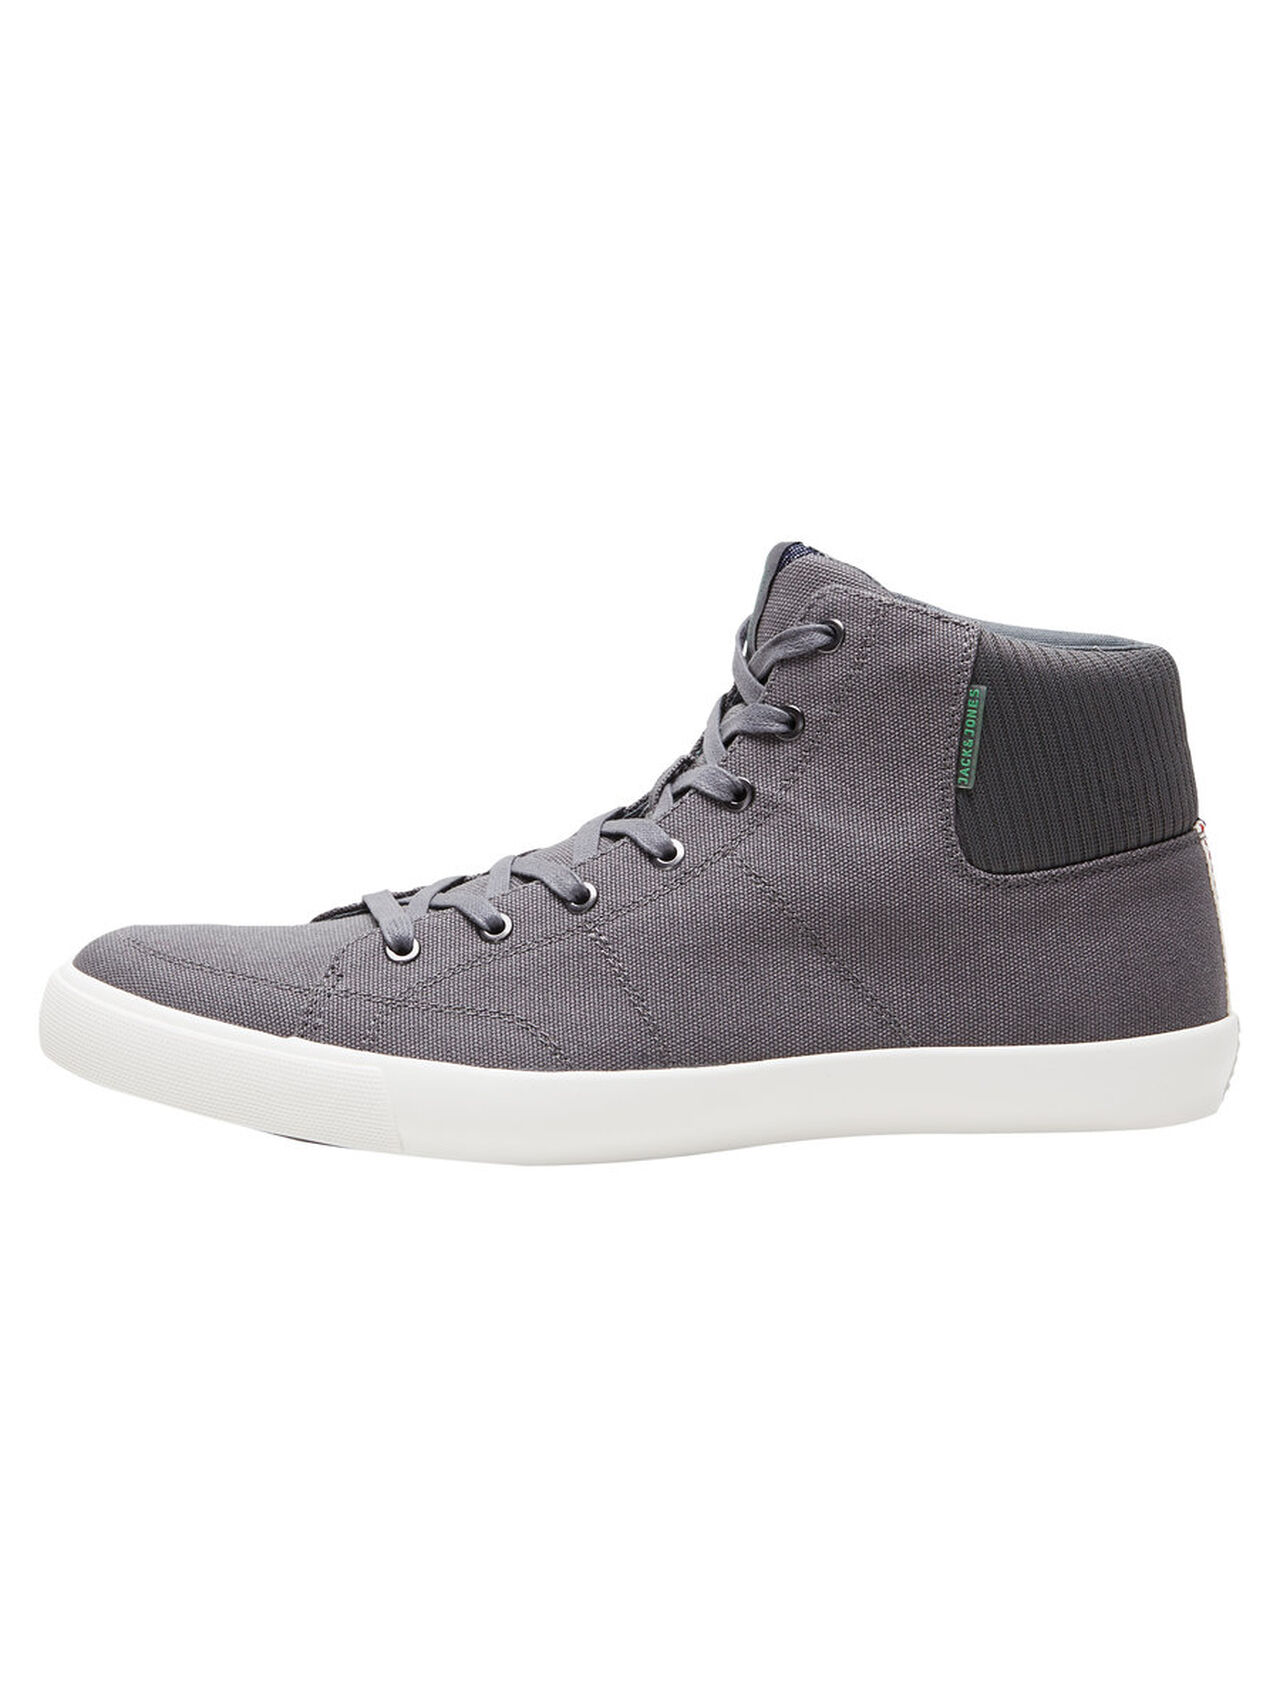 JACK & JONES Canvas Sneakers Heren Grijs thumbnail